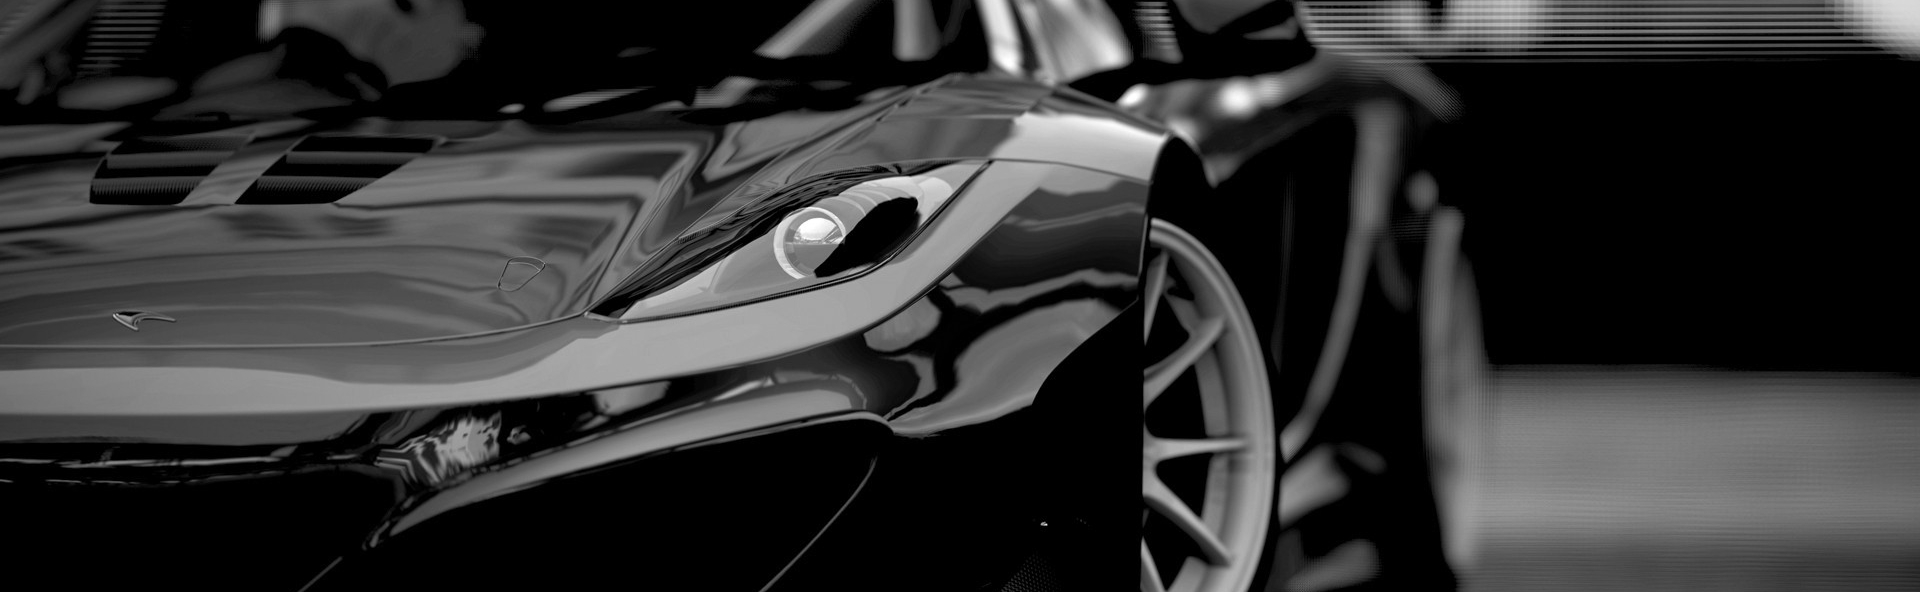 black-and-white-car-wallpaper